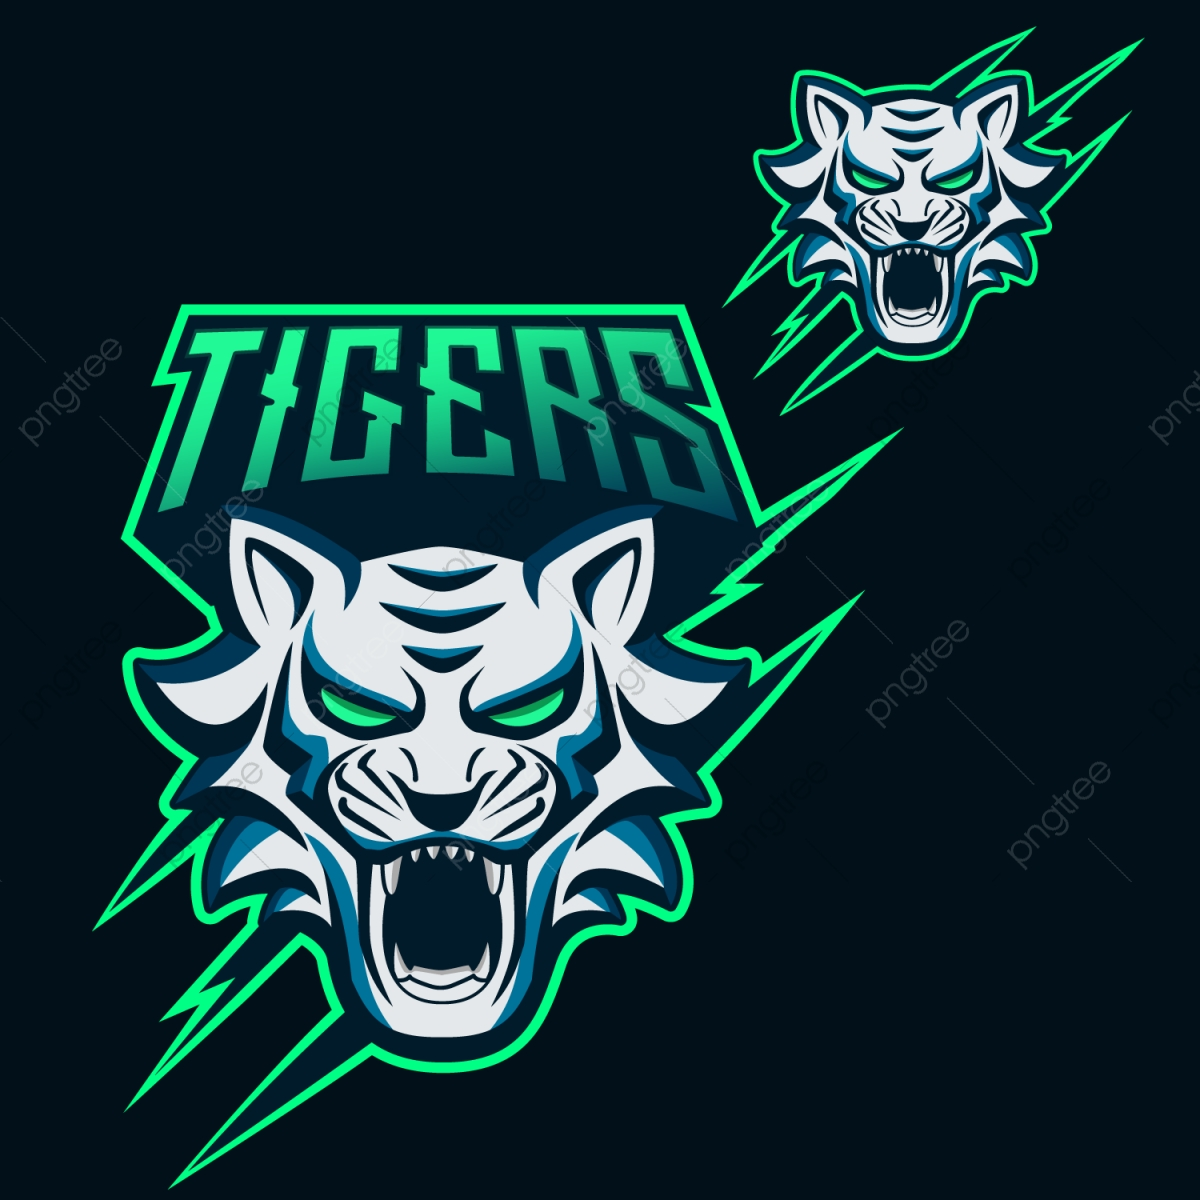 Tigers Esports Logo For Mascotand Twitch, Mascot, Logo, Team PNG and.